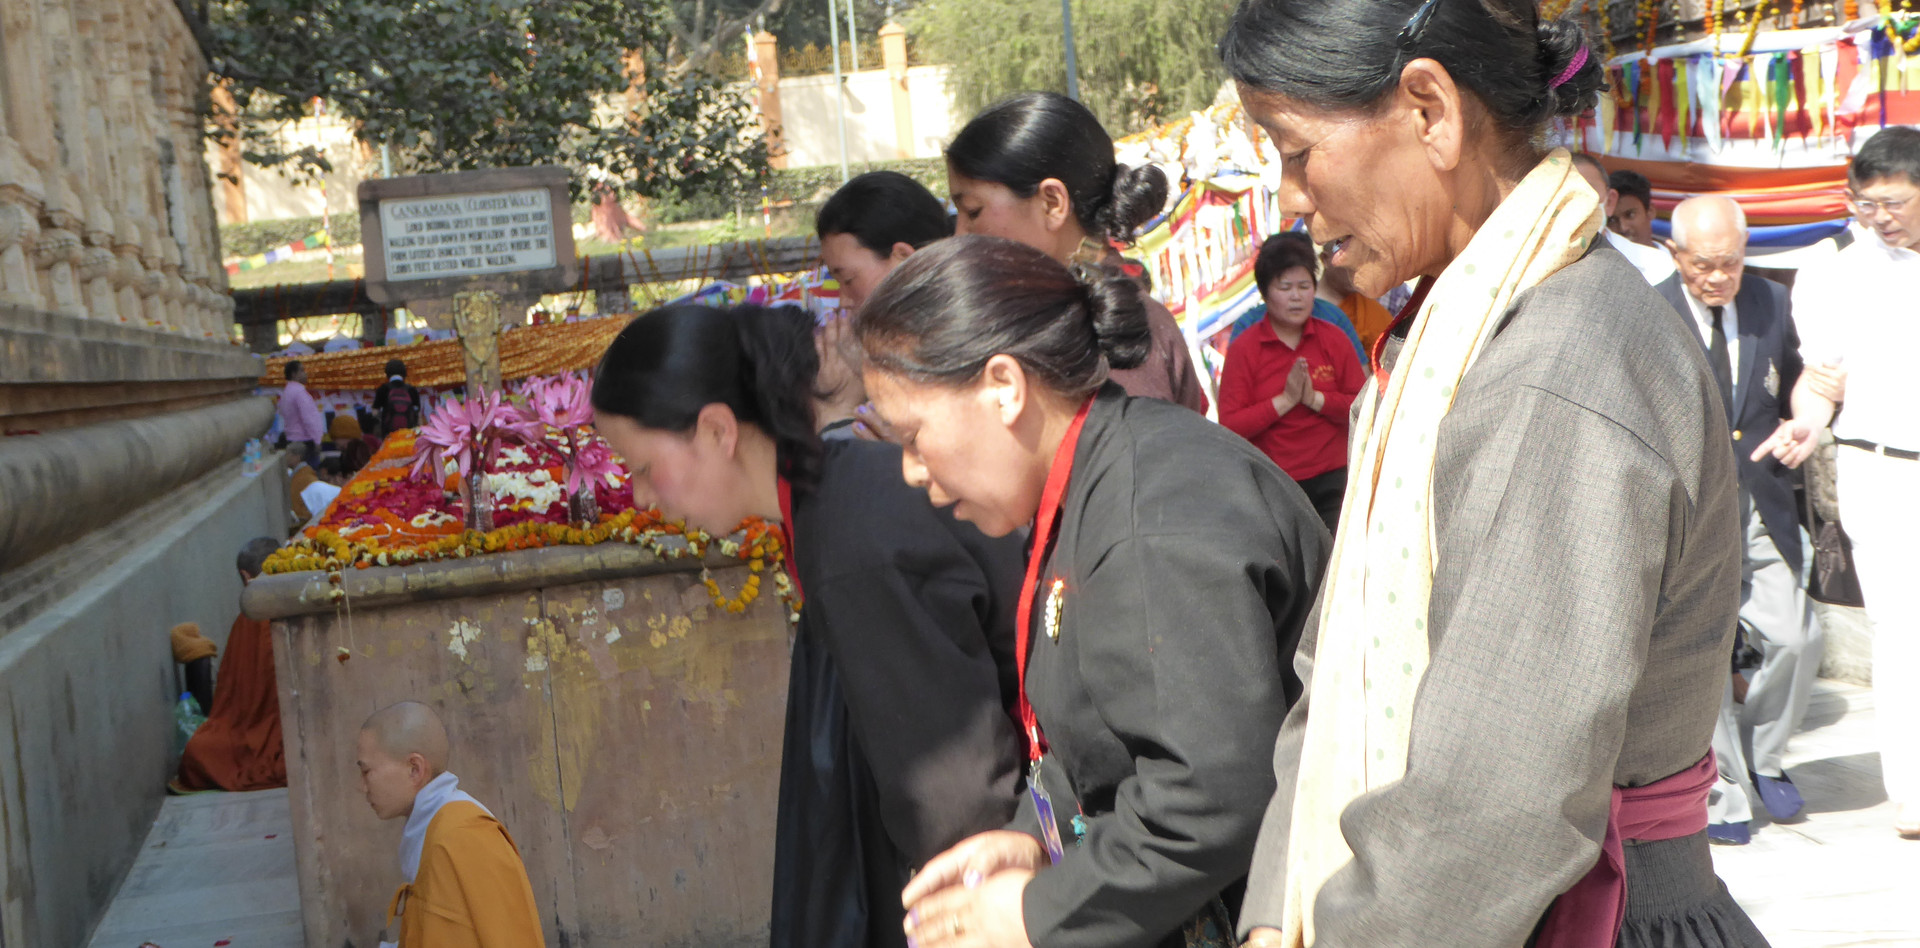 Tibetan women praying